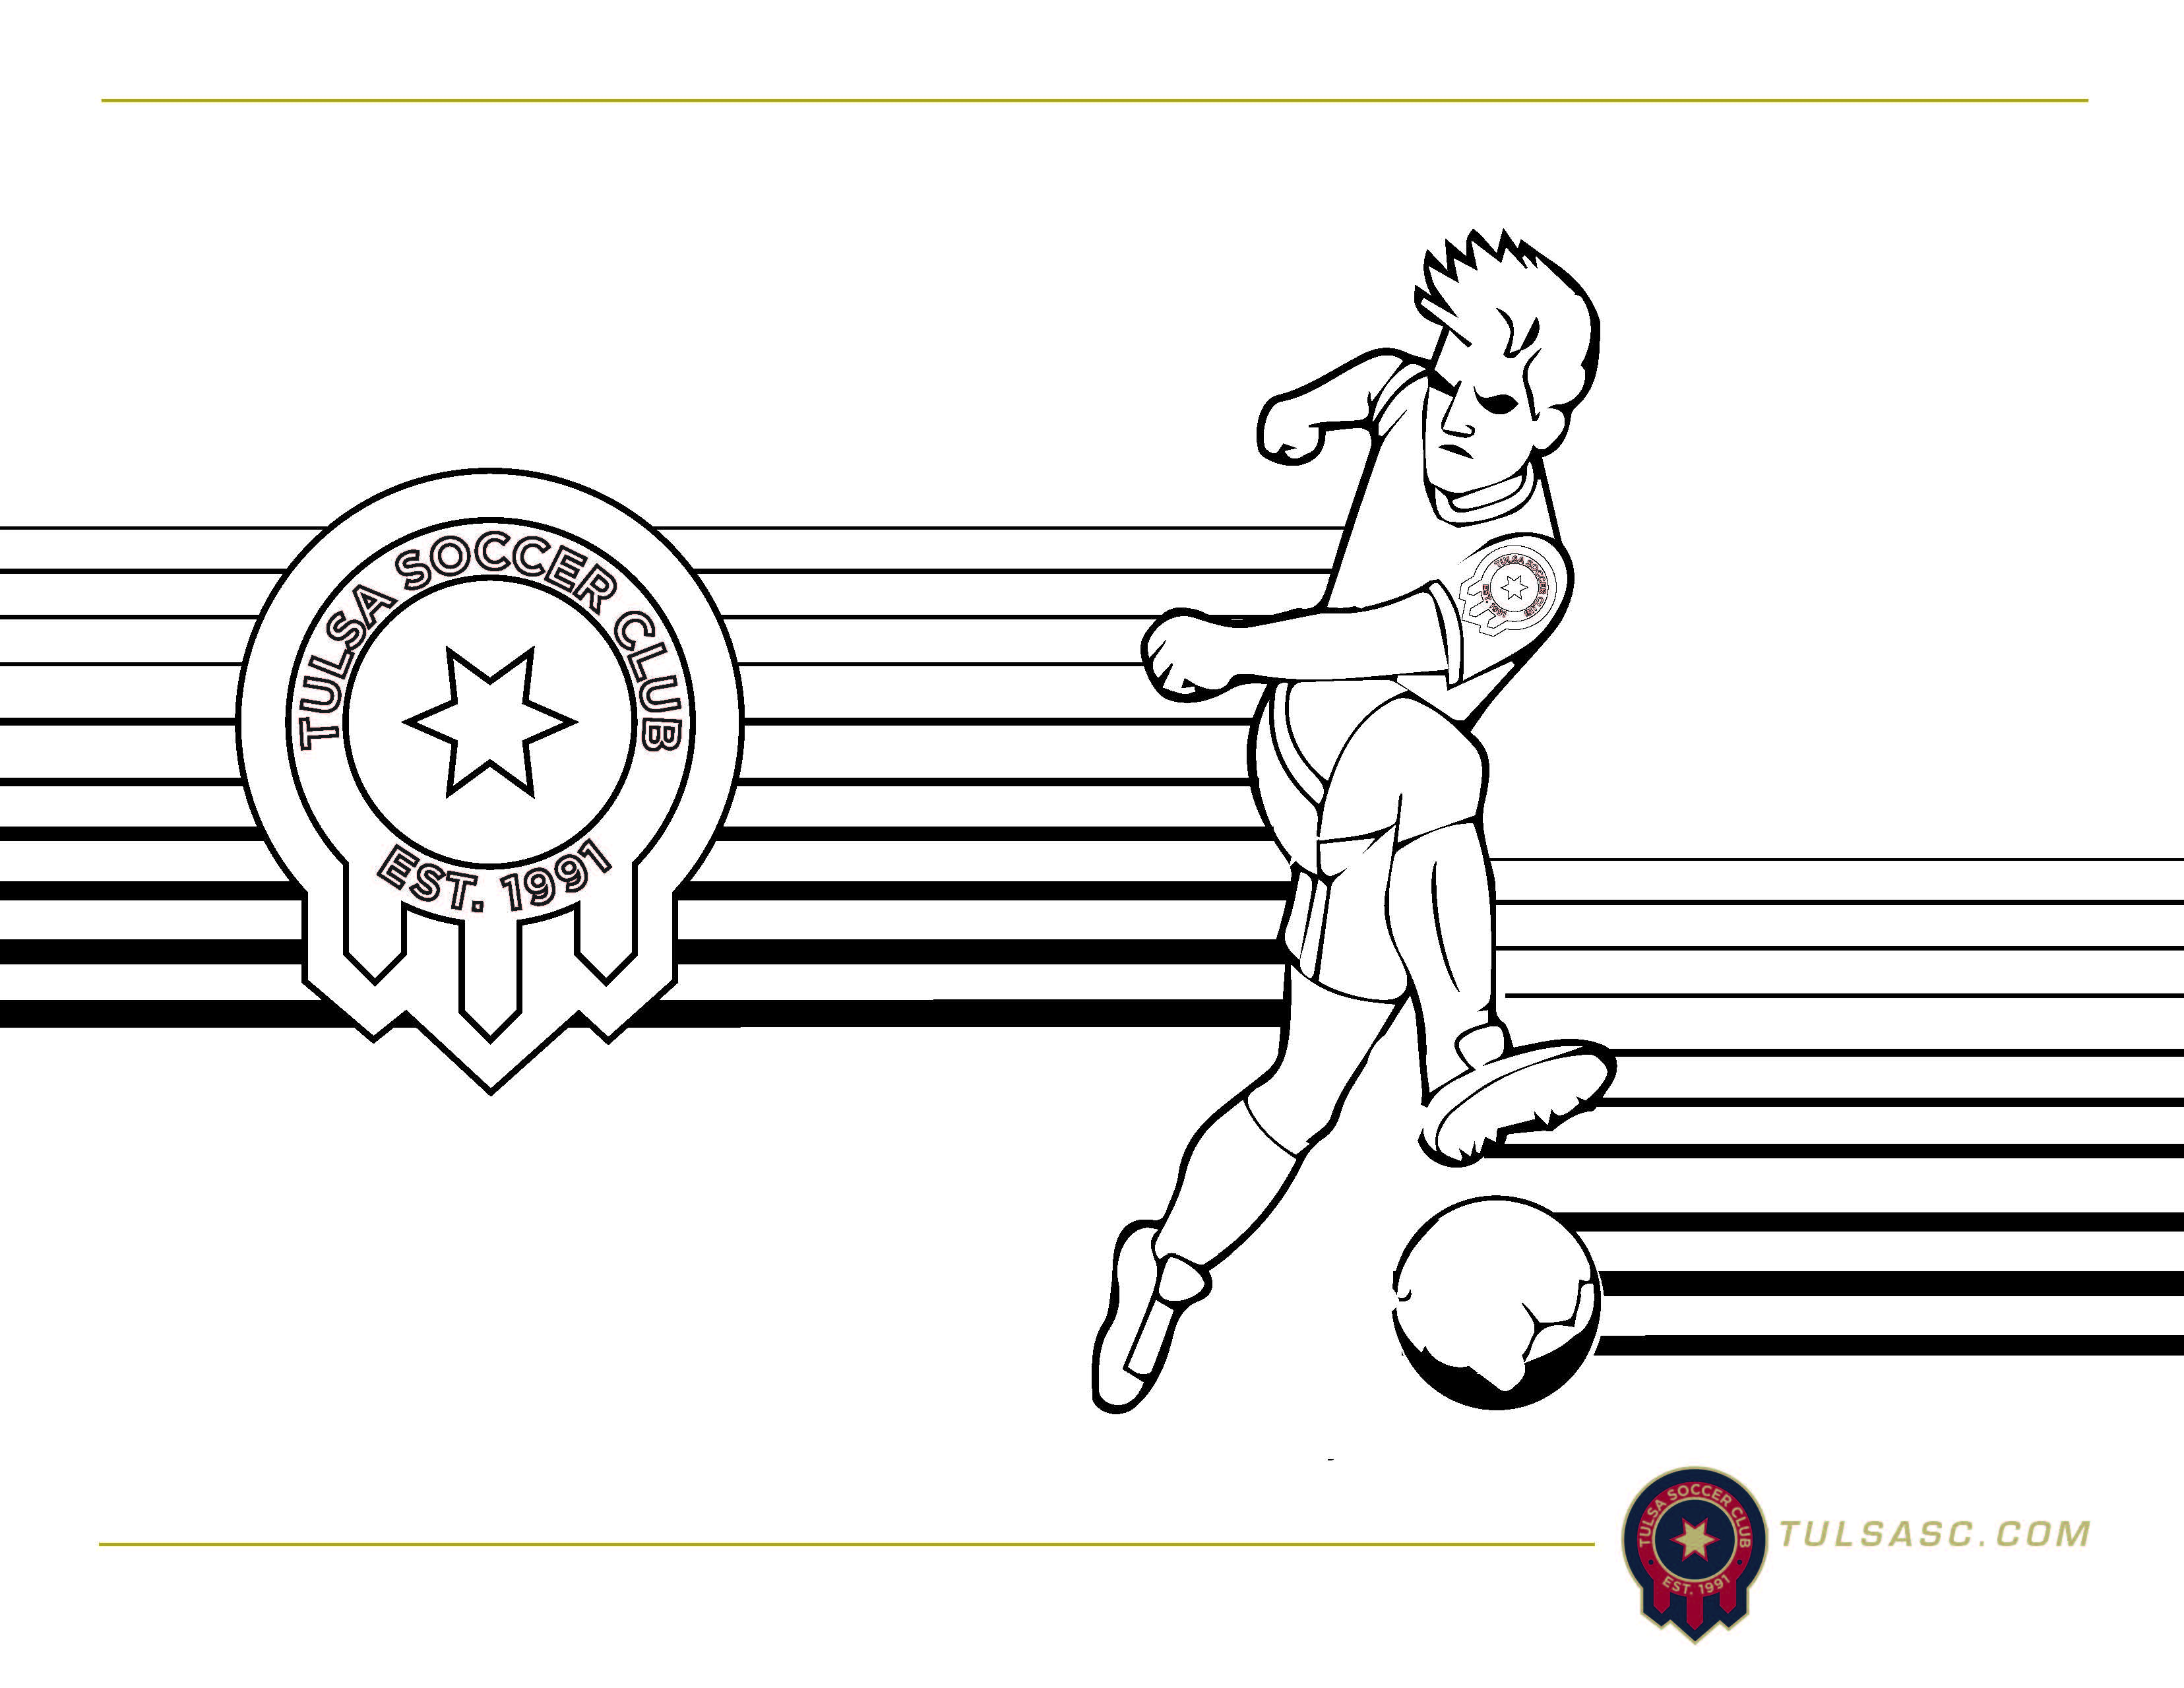 Football coloring pages, soccer - Topcoloringpages.net   2559x3311